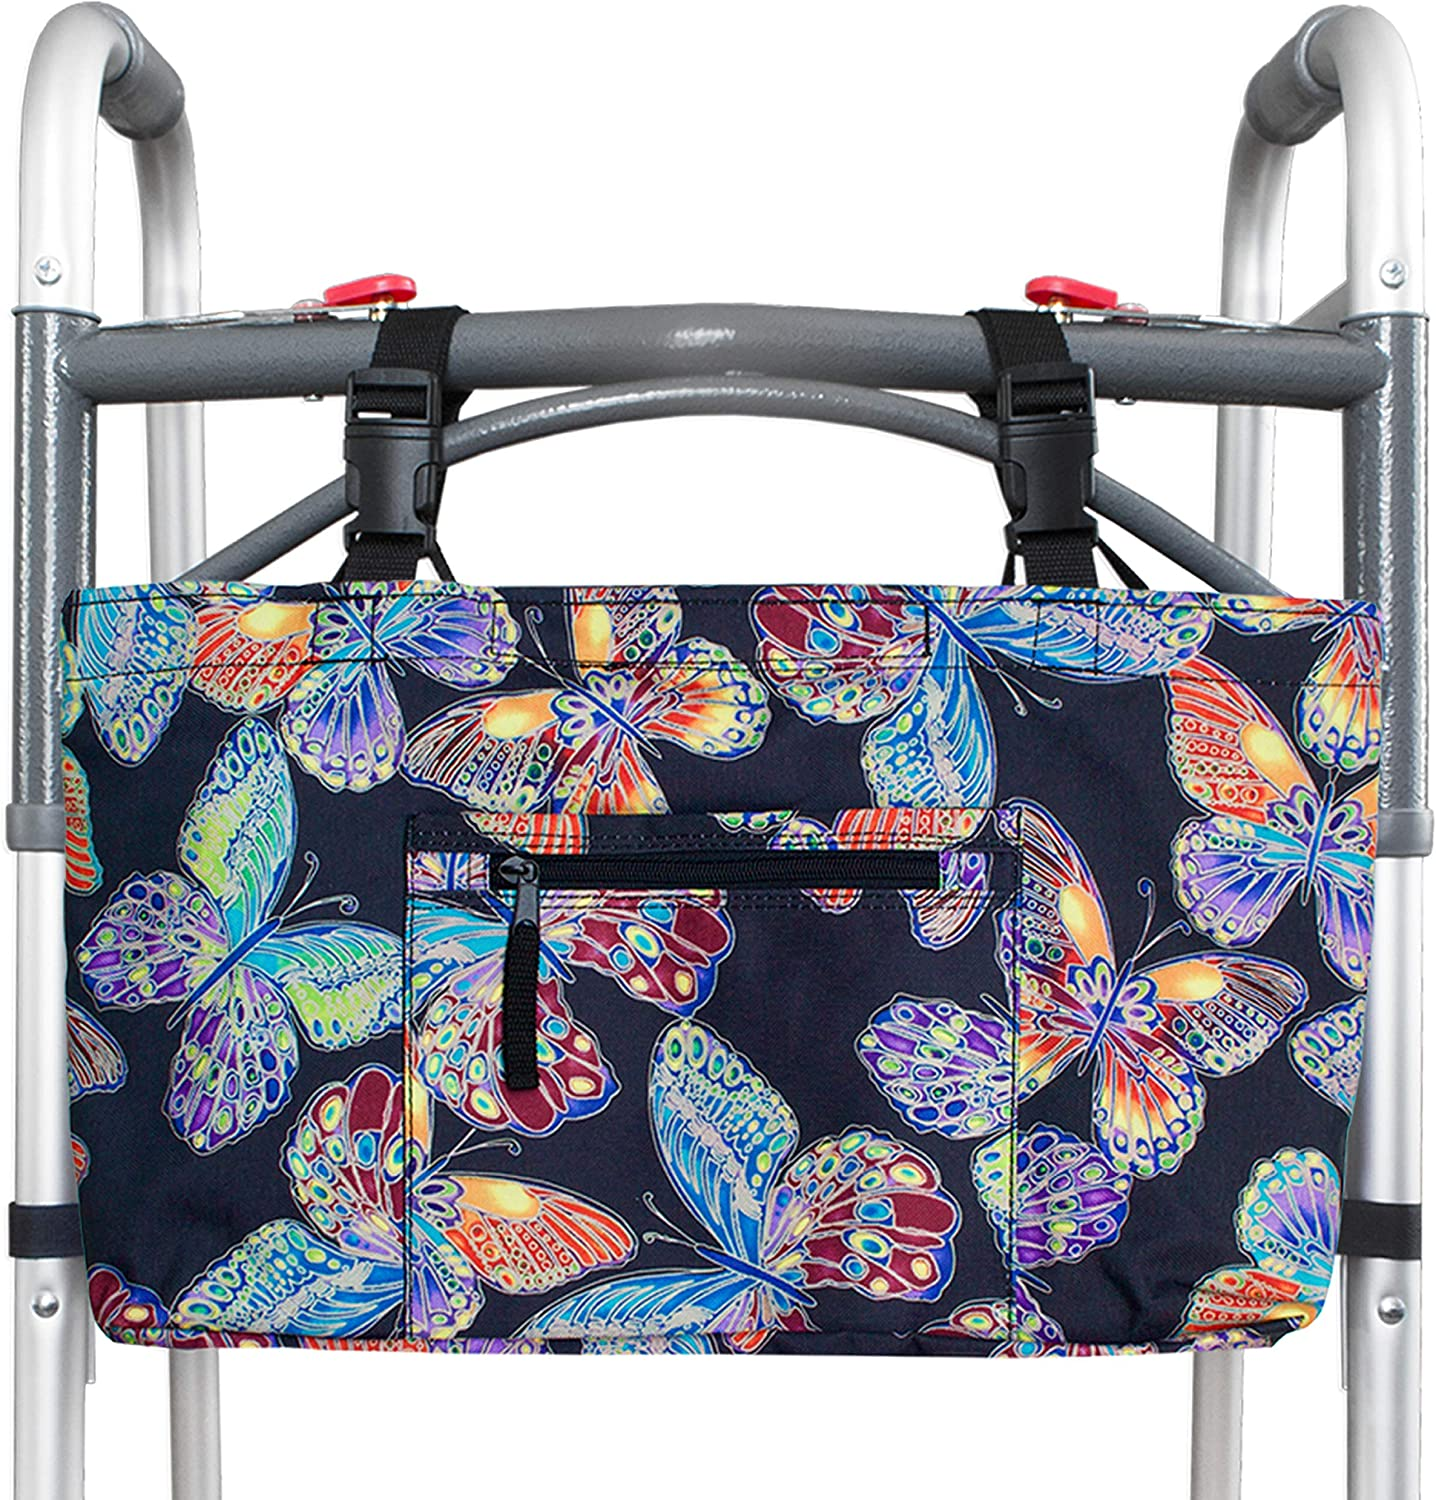 RMS Walker Bag with Soft Cooler - Water Resistant Tote with Temperature Controlled Thermal Compartment, Universal Fit for Walkers, Scooters or Rollator Walkers (Vivid Butterfly): Health & Personal Care